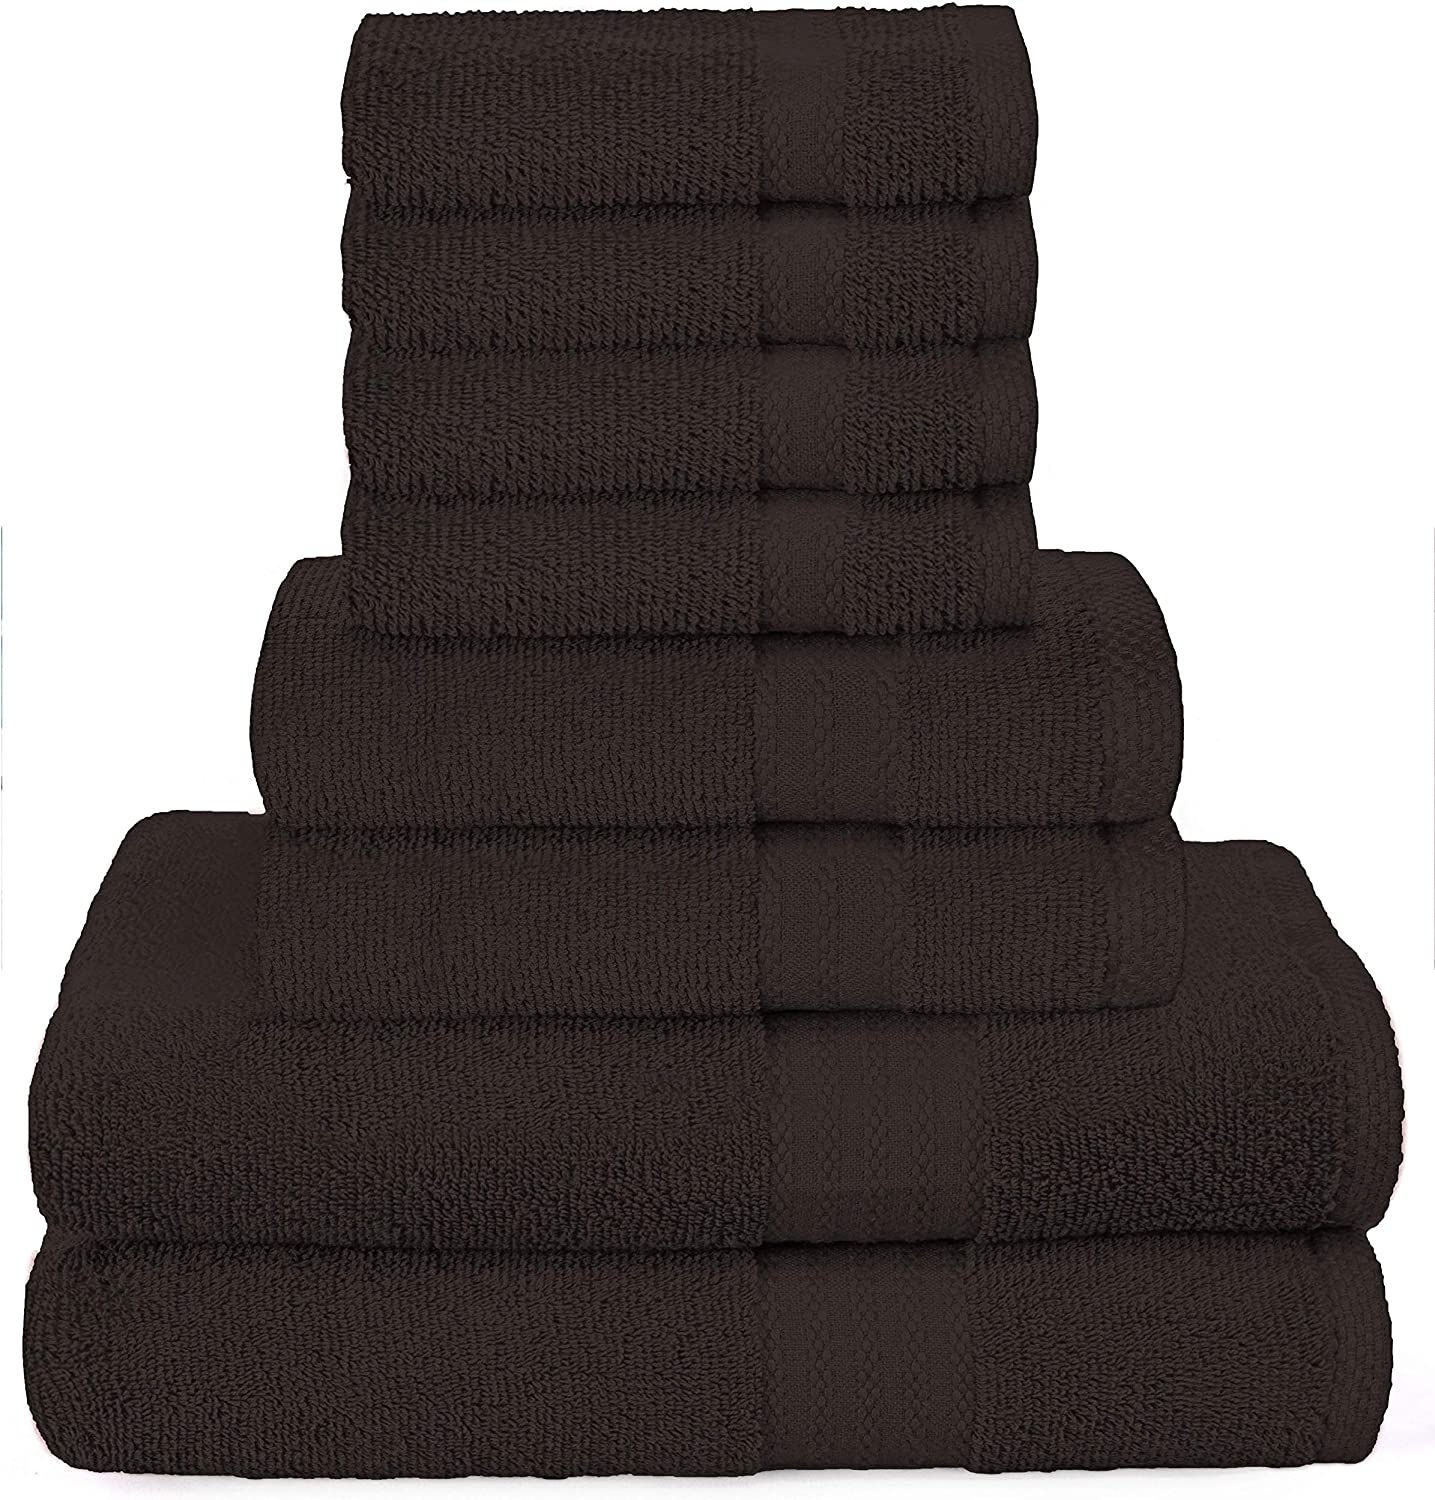 GLAMBURG Ultra Soft 8-Piece Towel Set - 100% Pure Ringspun Cotton, Contains 2 Oversized Bath Towels 27x54, 2 Hand Towels 16x28, 4 Wash Cloths 13x13 - Ideal for Everyday use - Chocolate Brown